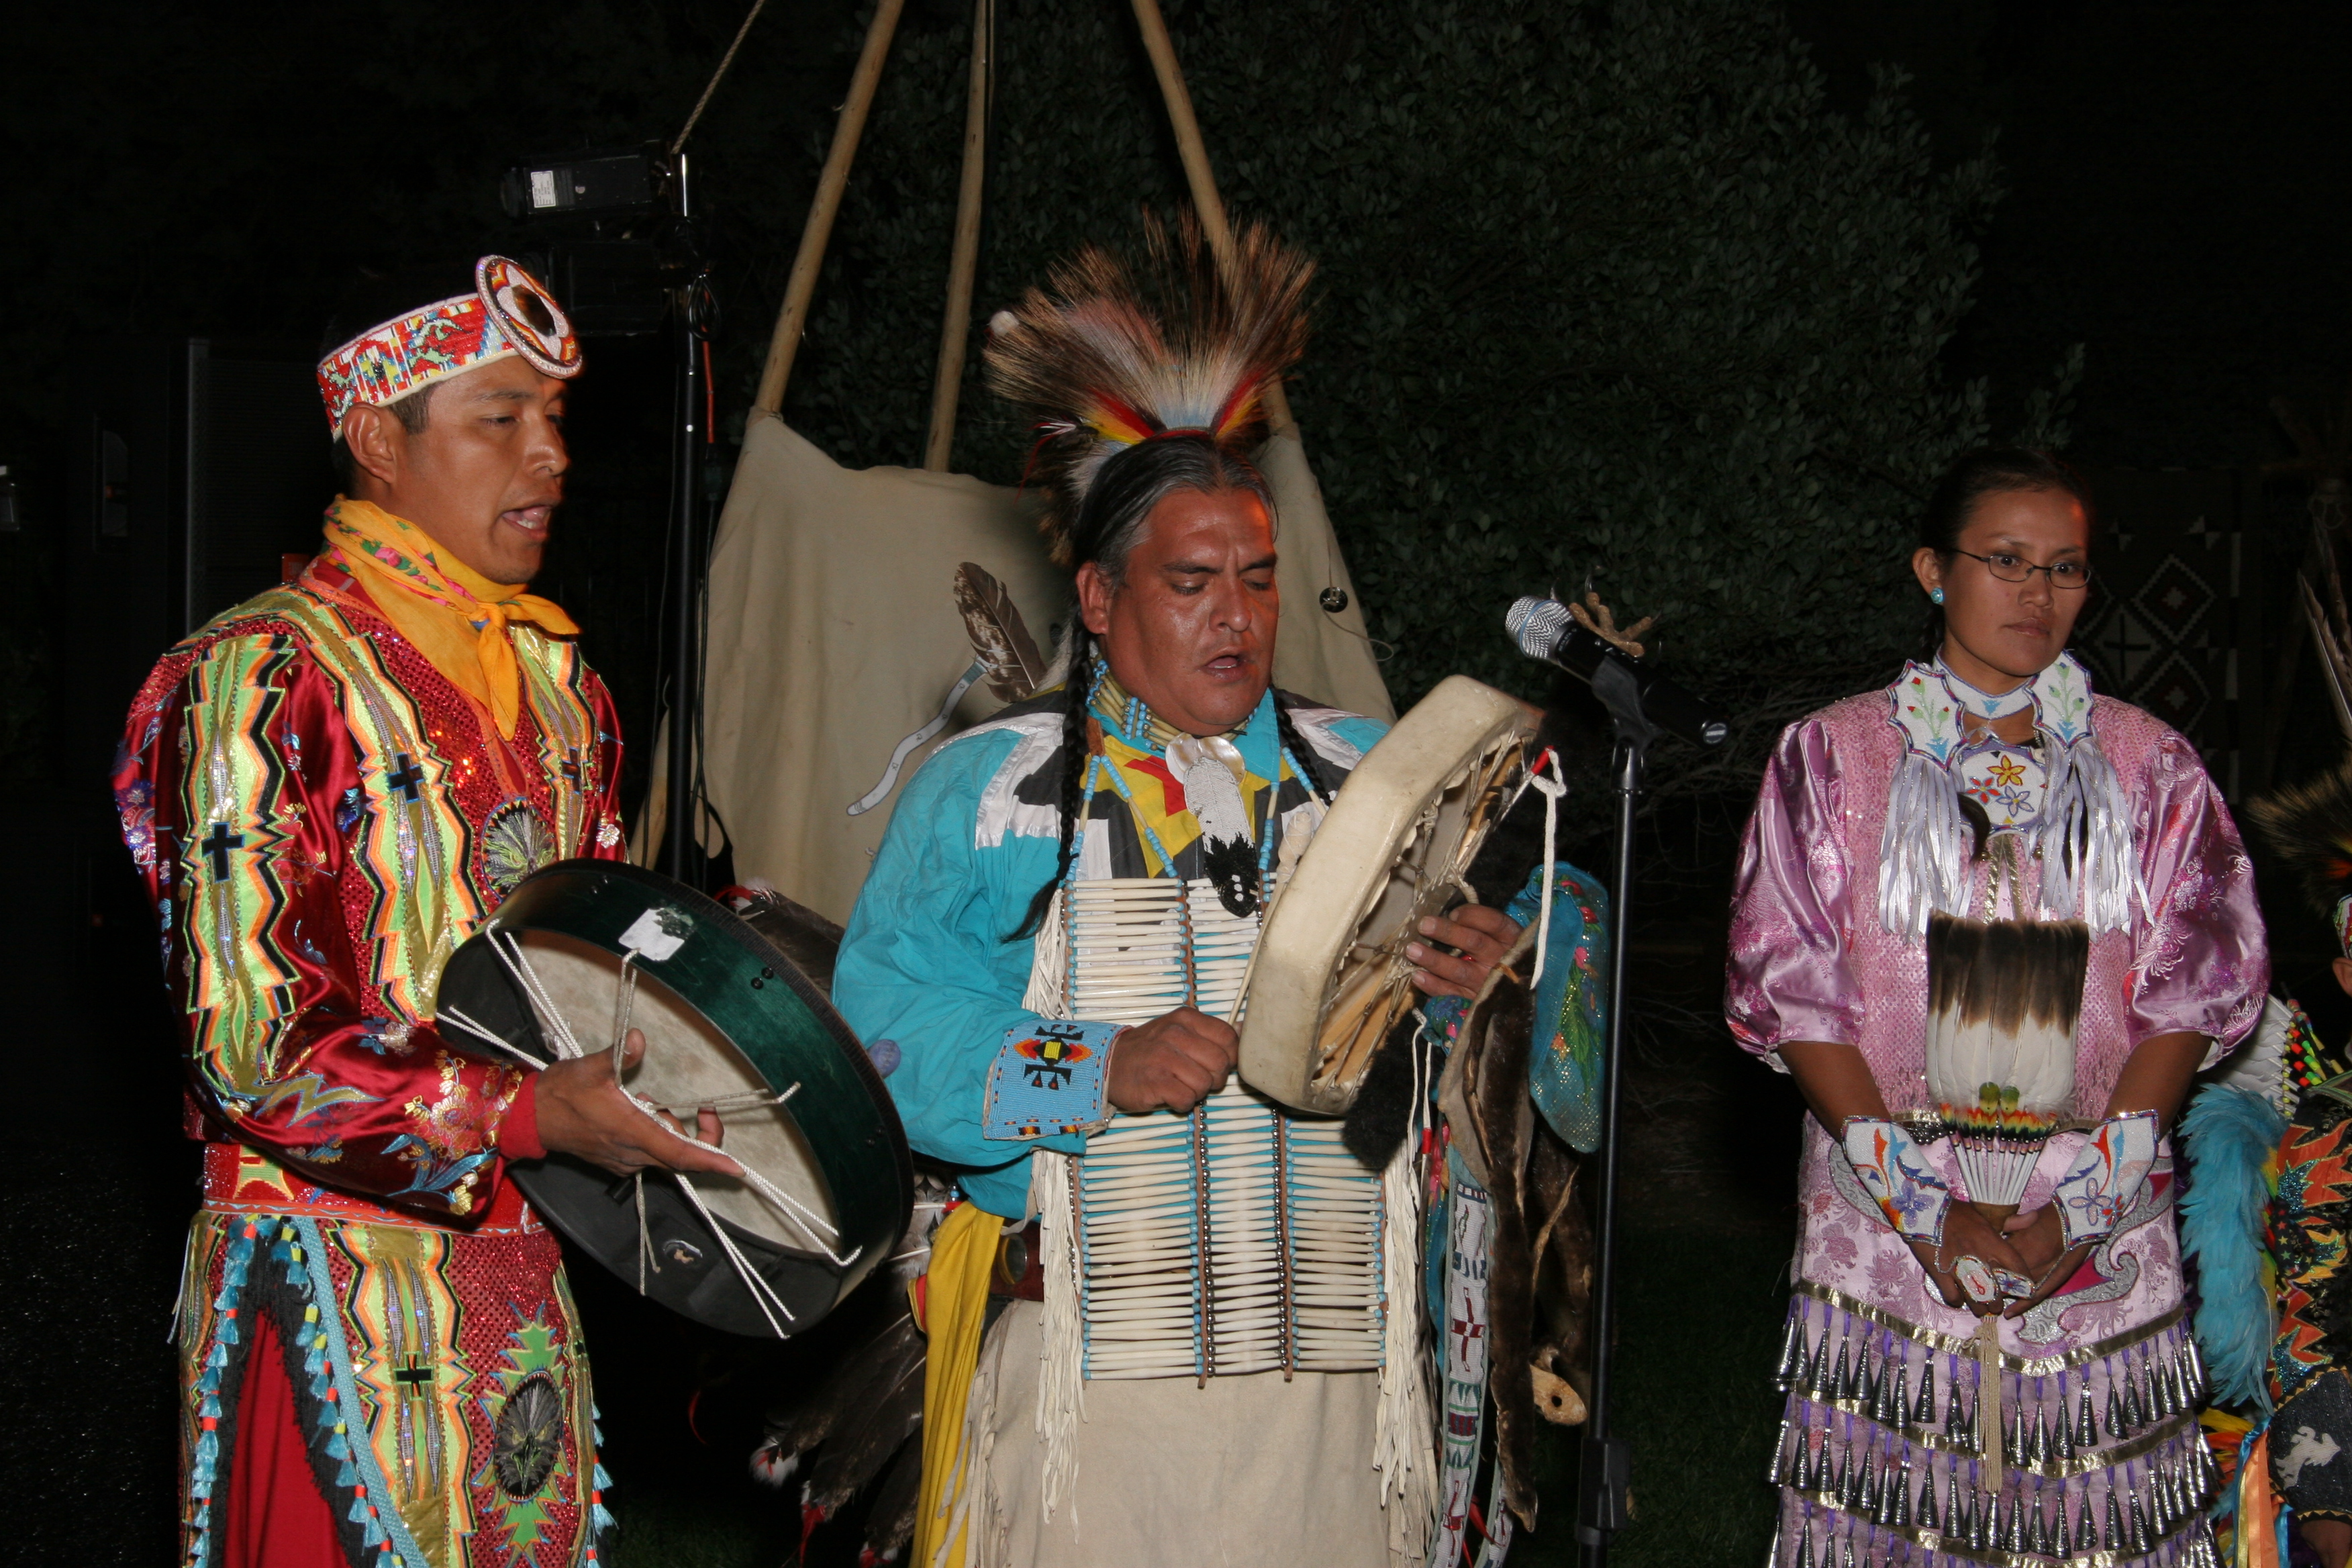 Native American Village, Entertainers, Image Provided By Show Stoppers